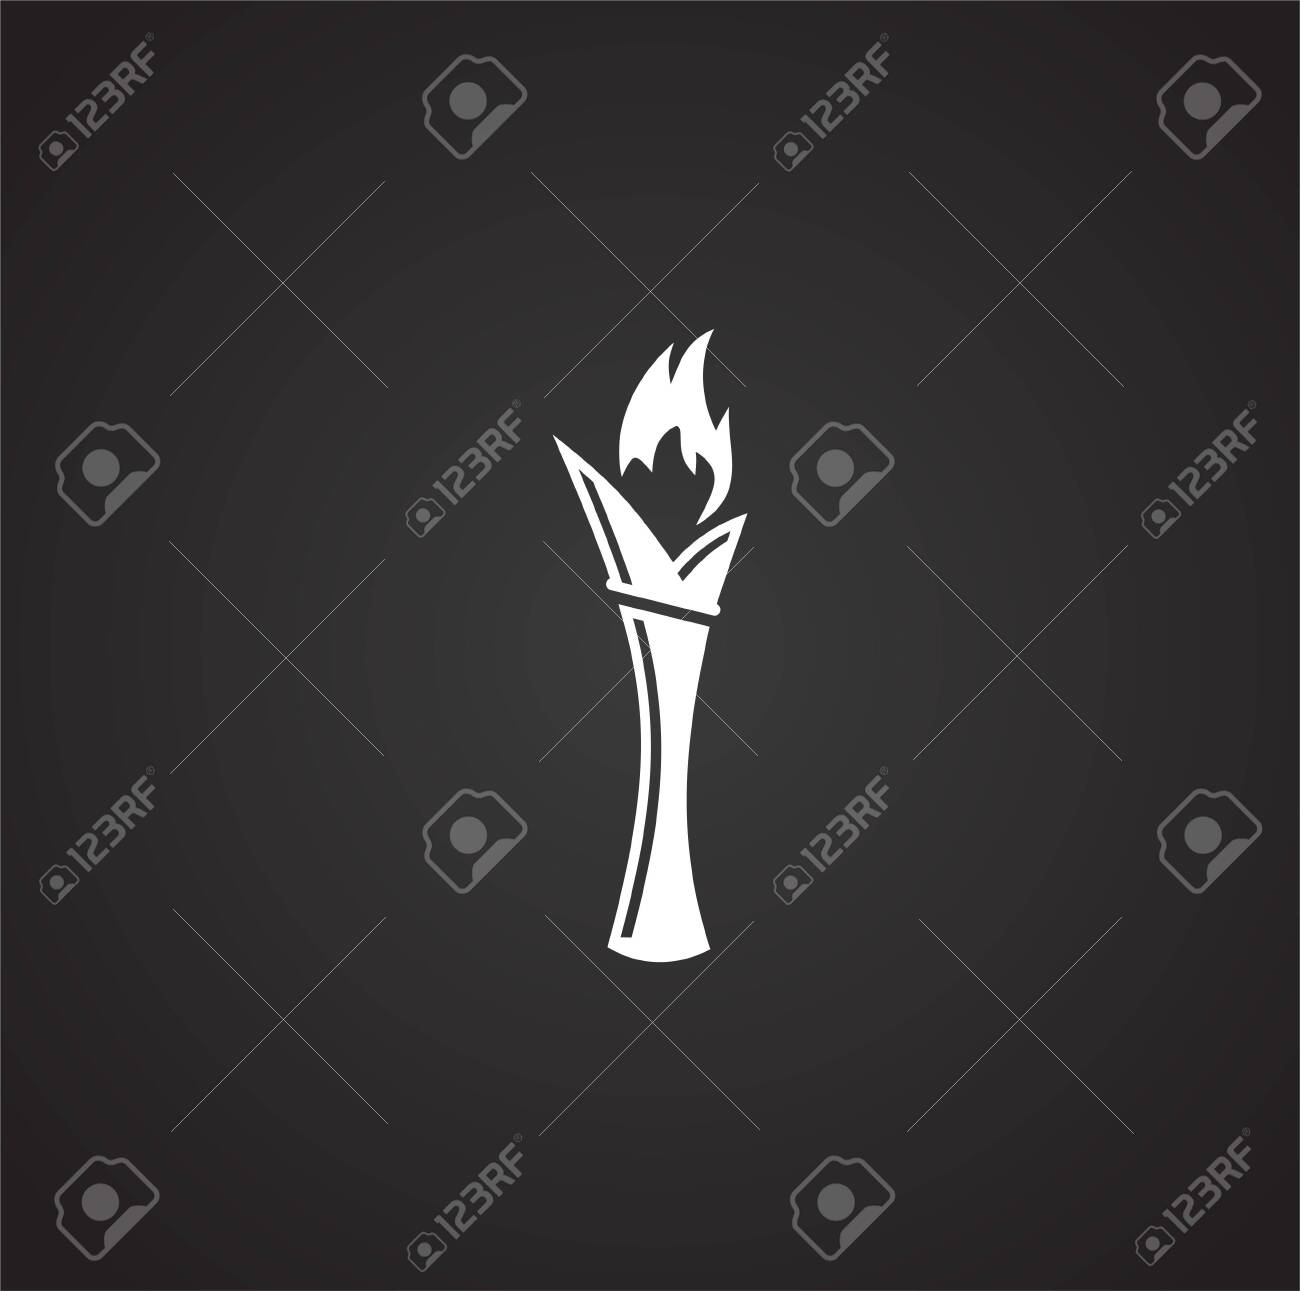 Torch icon on background for graphic and web design. Simple illustration. Internet concept symbol for website button or mobile app - 128329311